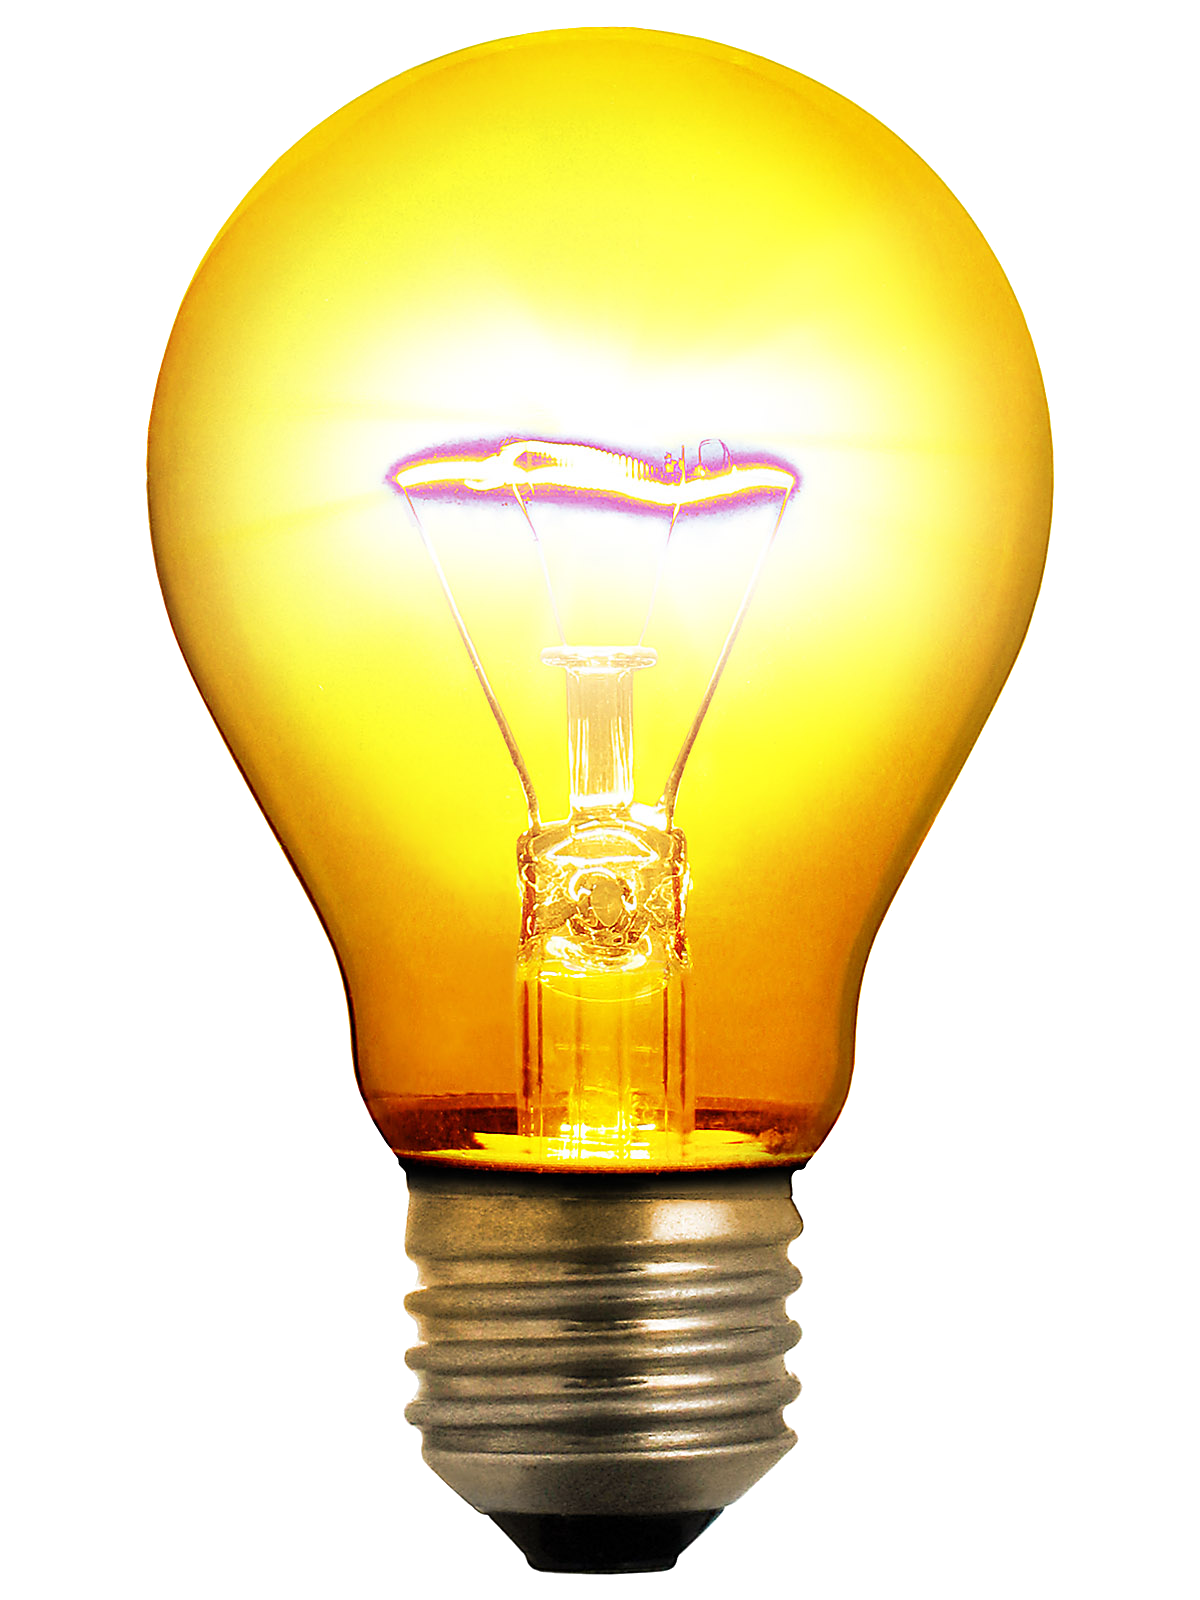 Glowing Bulb Transparent PNG